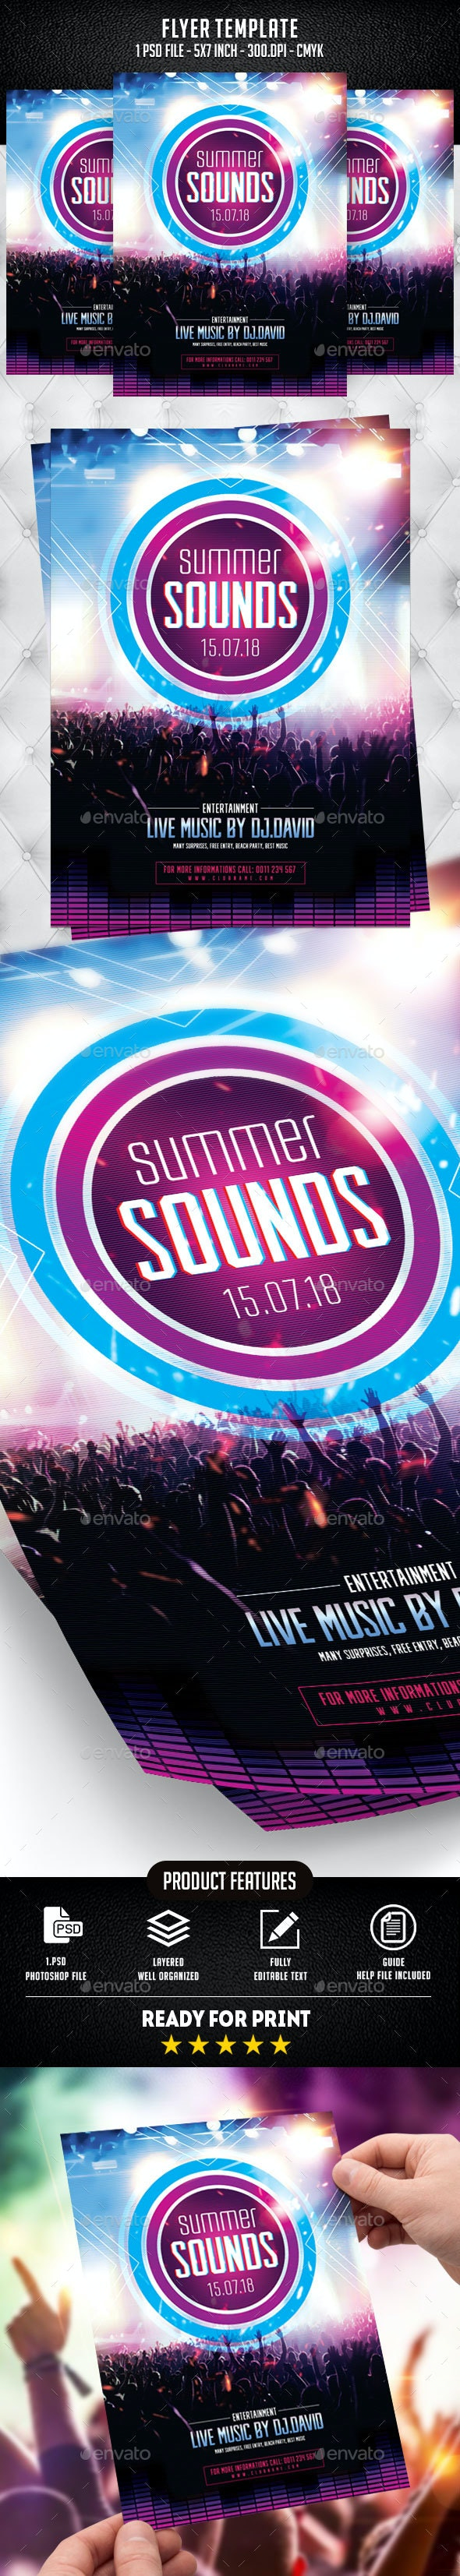 Summer Sounds Flyer Template - Flyers Print Templates